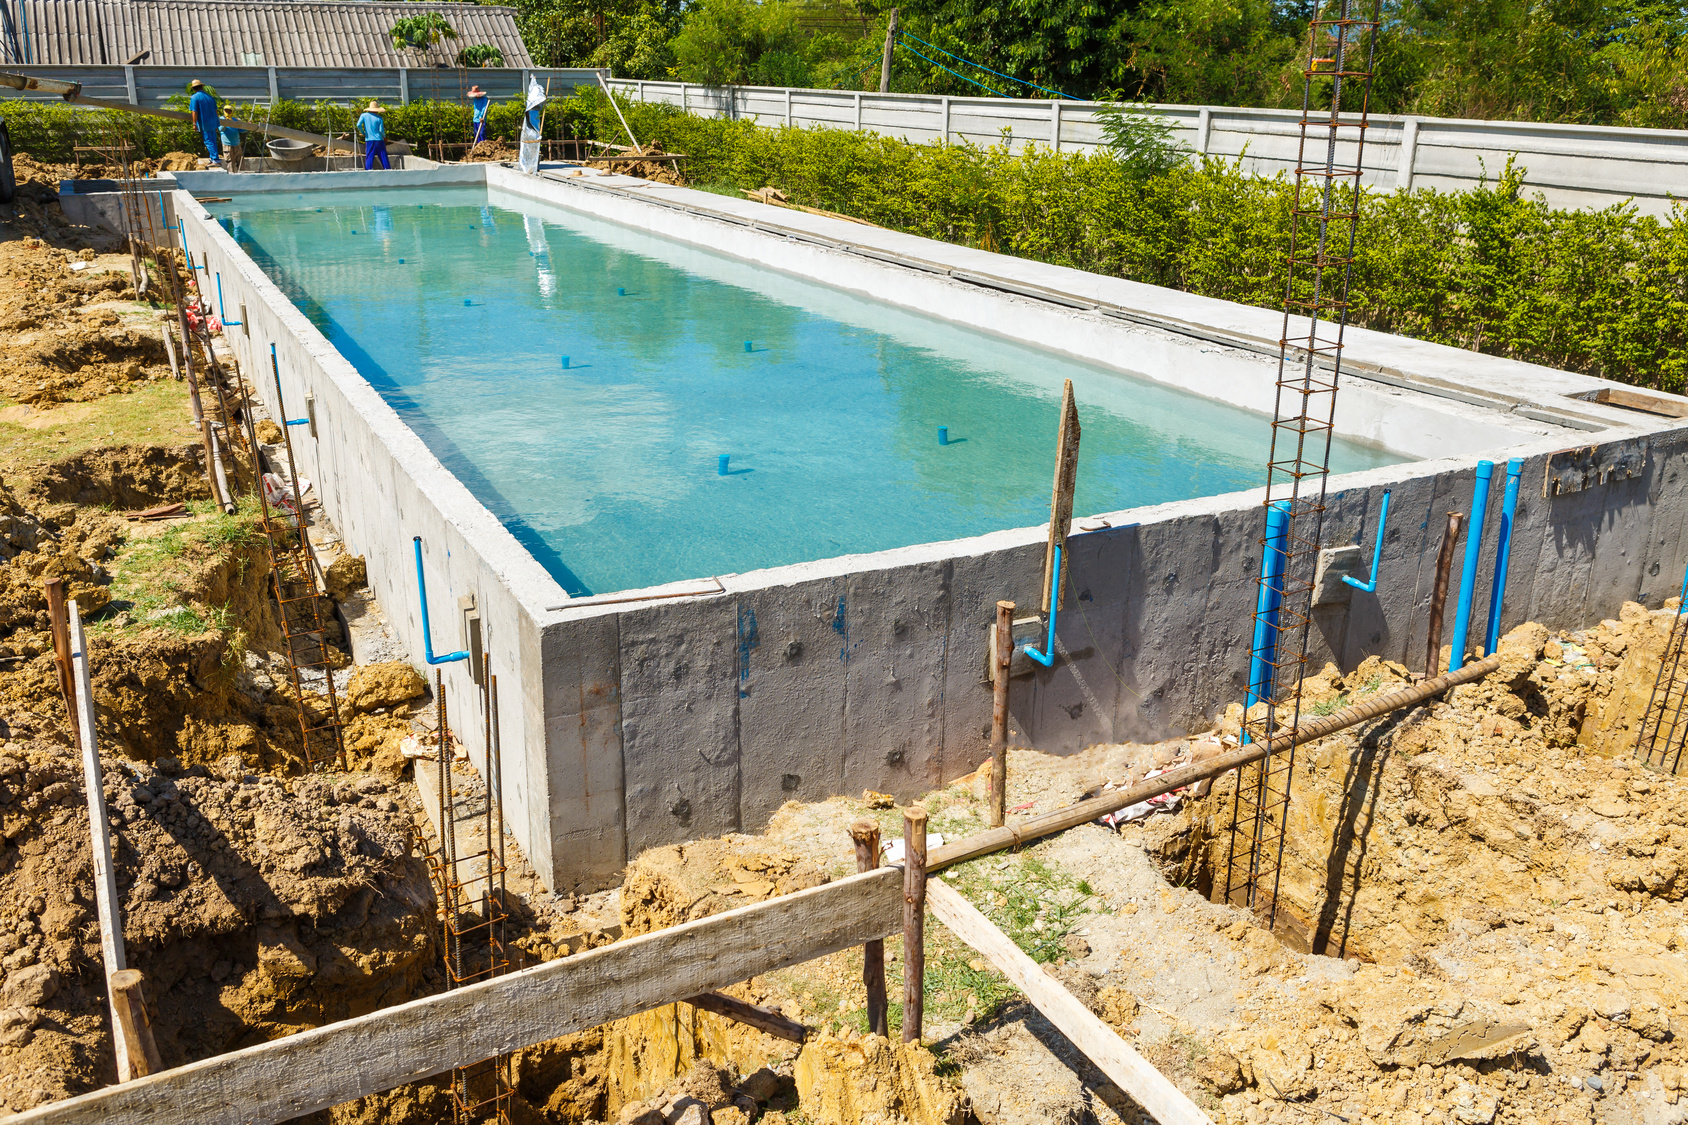 Construire une piscine b ton traditionnelle en kit for Piscine traditionnelle